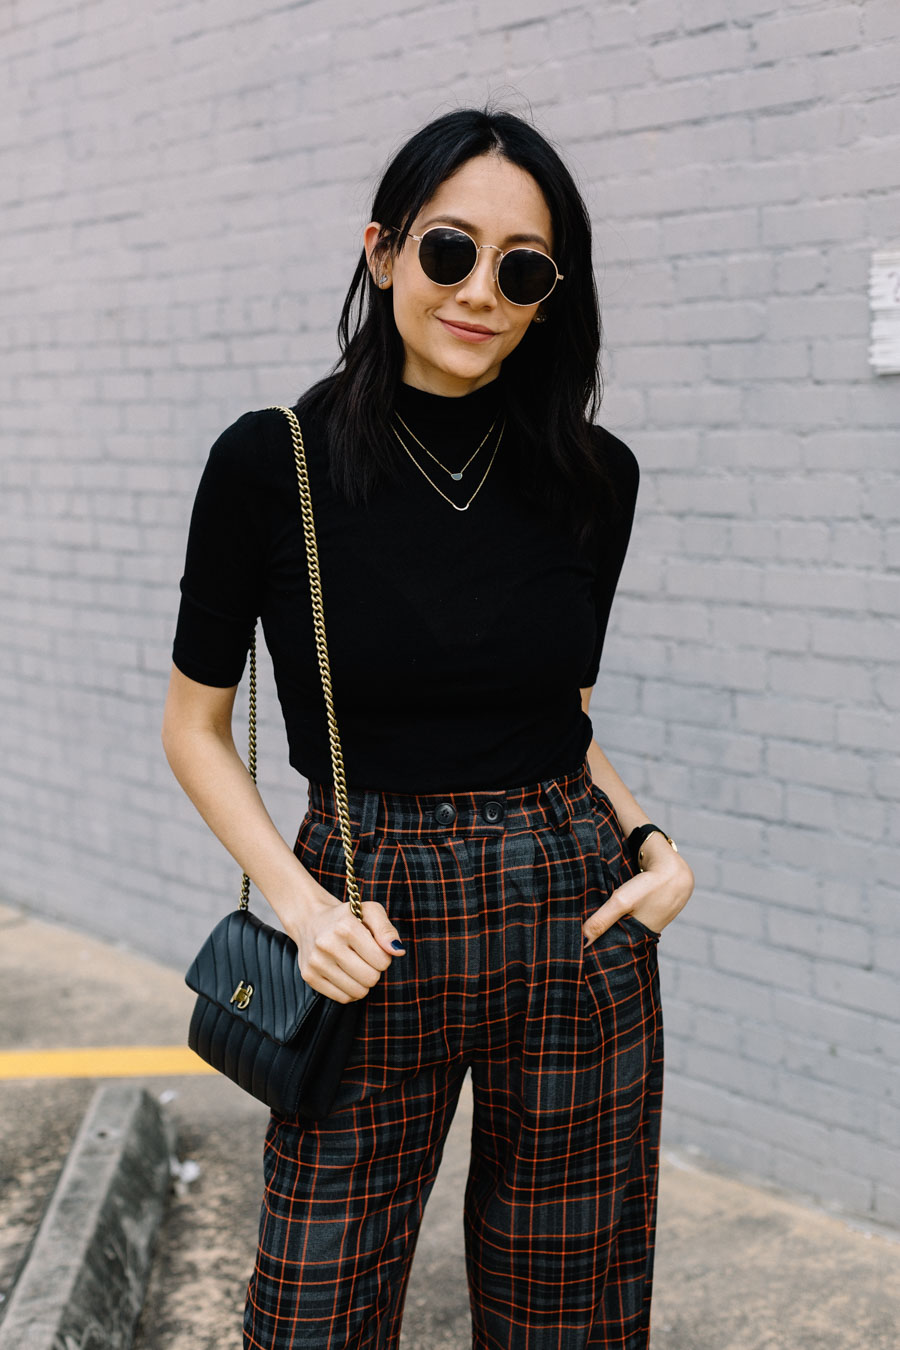 Lilly Beltran wearing Topshop check peg trousers with a black high neck top and Henri Bendel Bag for a casual street style look.